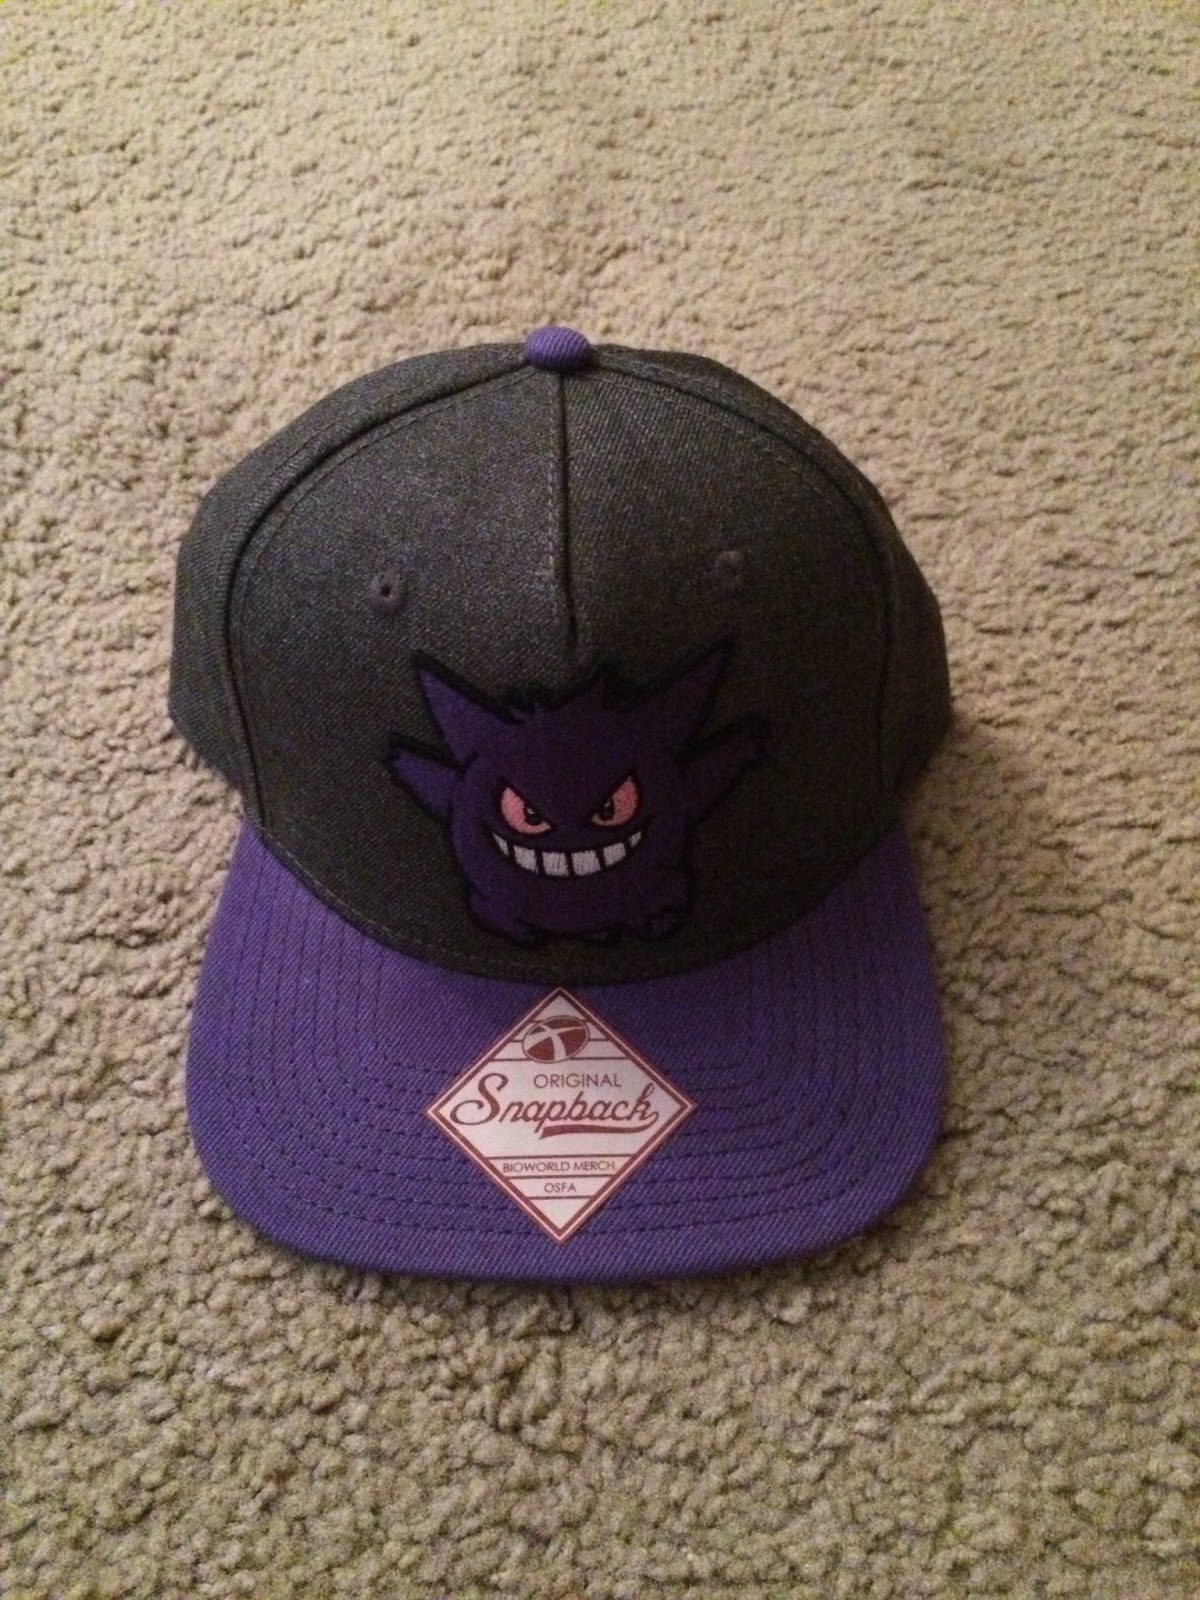 bd364b34262f6 They are snapbacks so you can adjust them so that helps. The Gengar hat  fits a little snugger than the Meowth hat. Every time I go back to Spencer s  ...